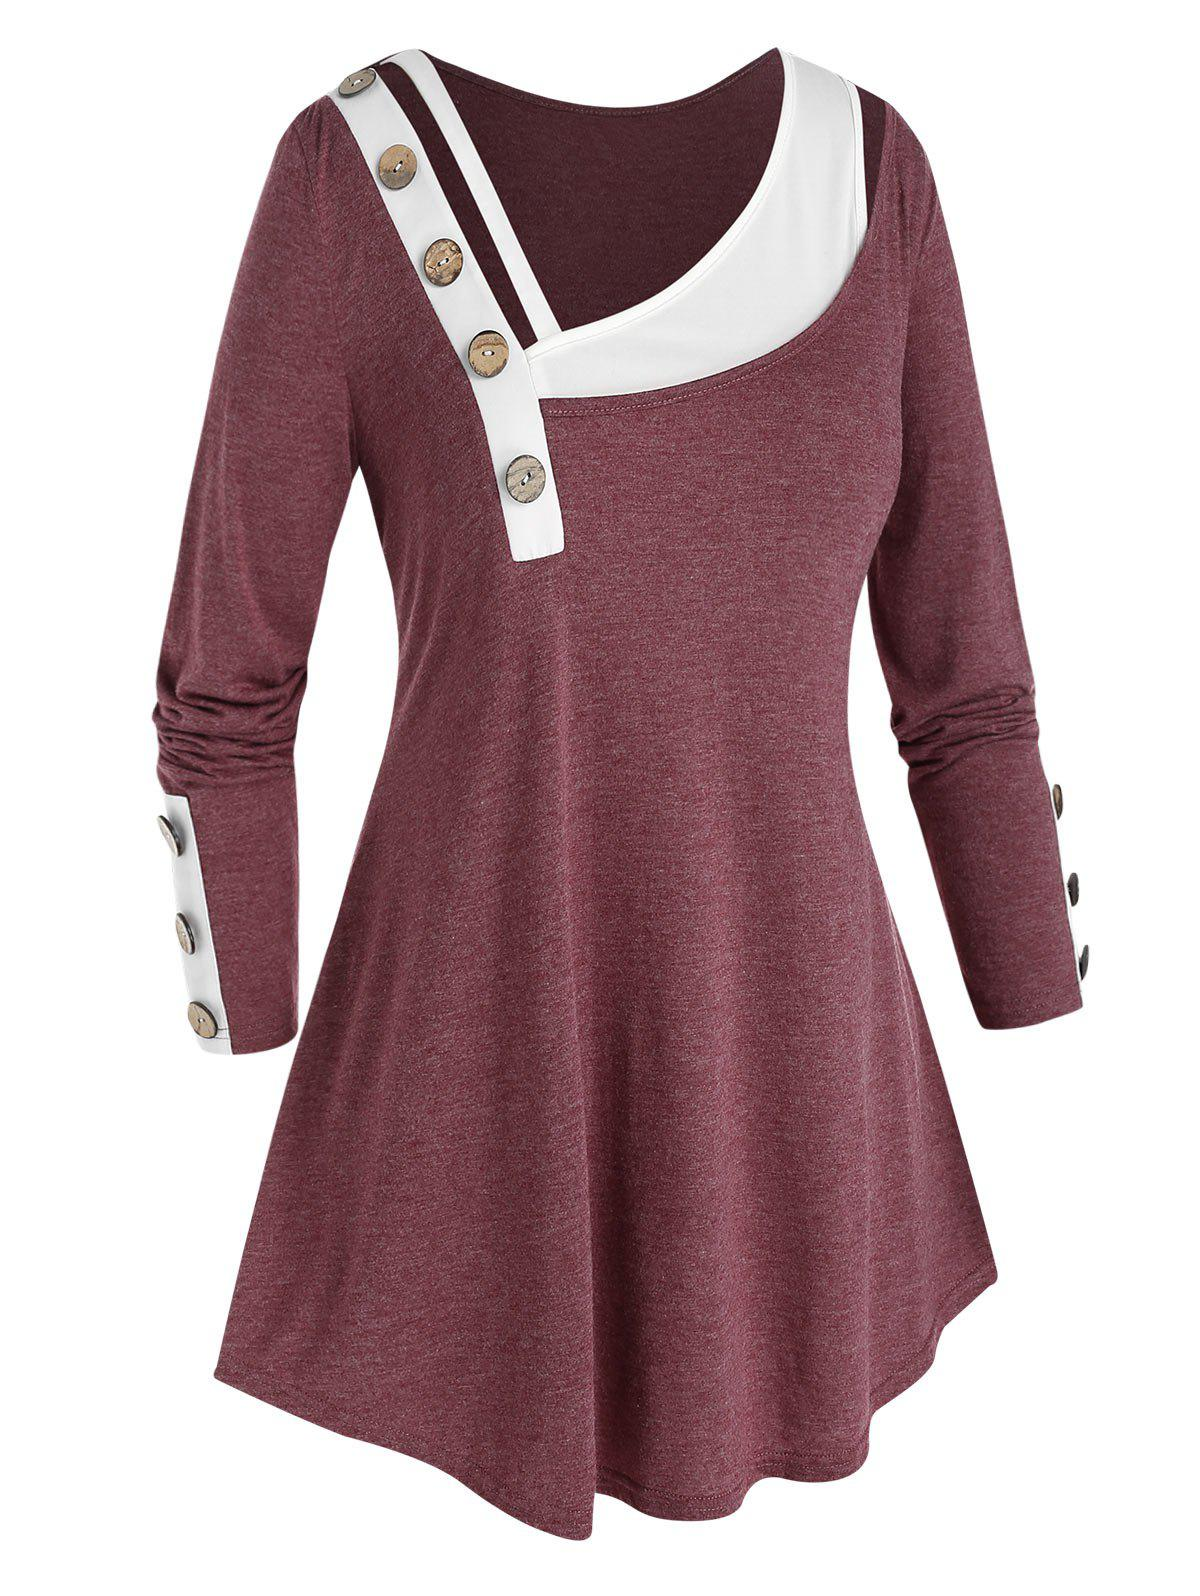 Plus Size Skew Neck Paneled Mock Button T Shirt - RED WINE 3X